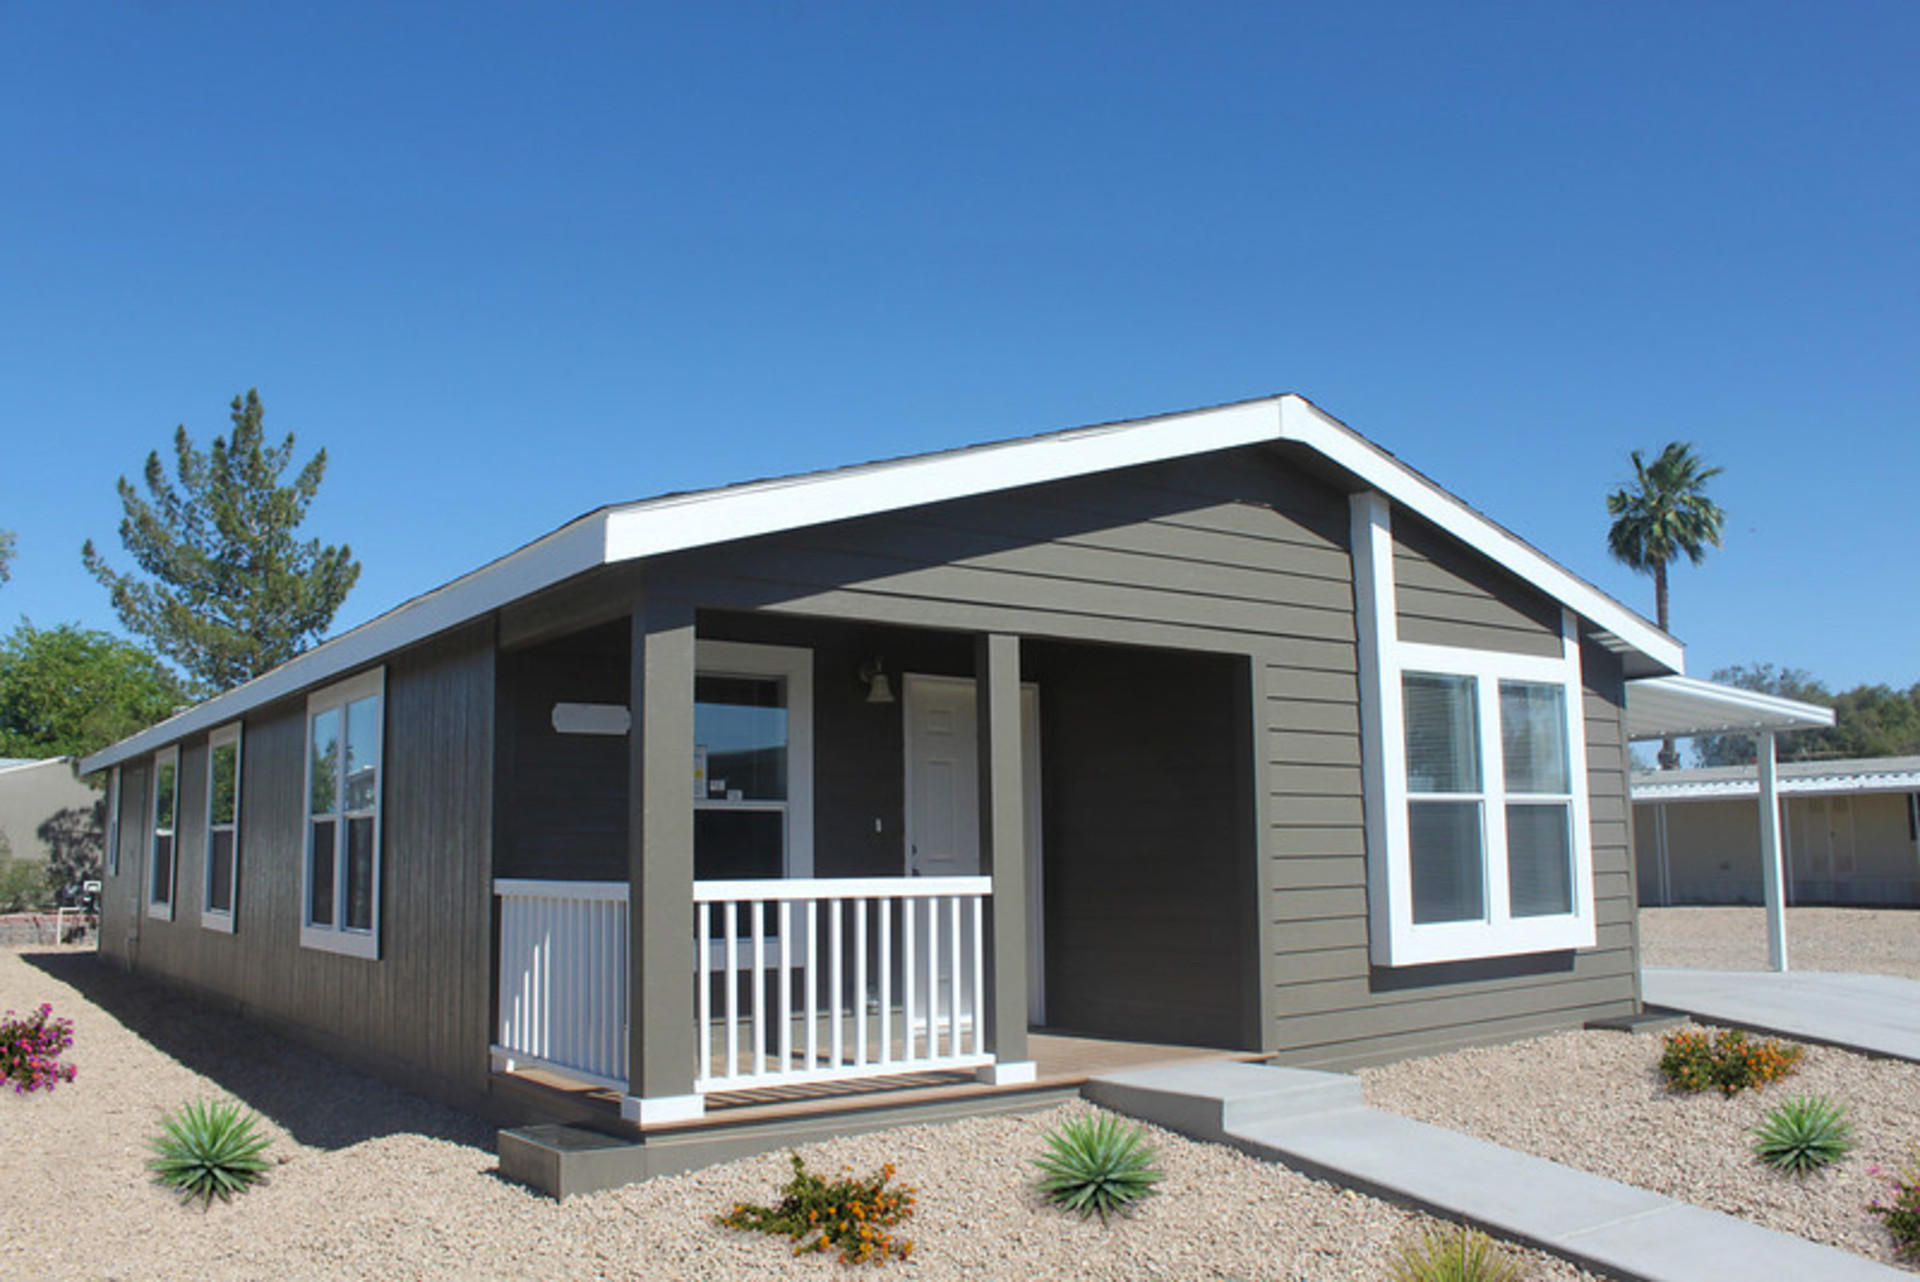 Fullsize Of Manufactured Homes For Rent